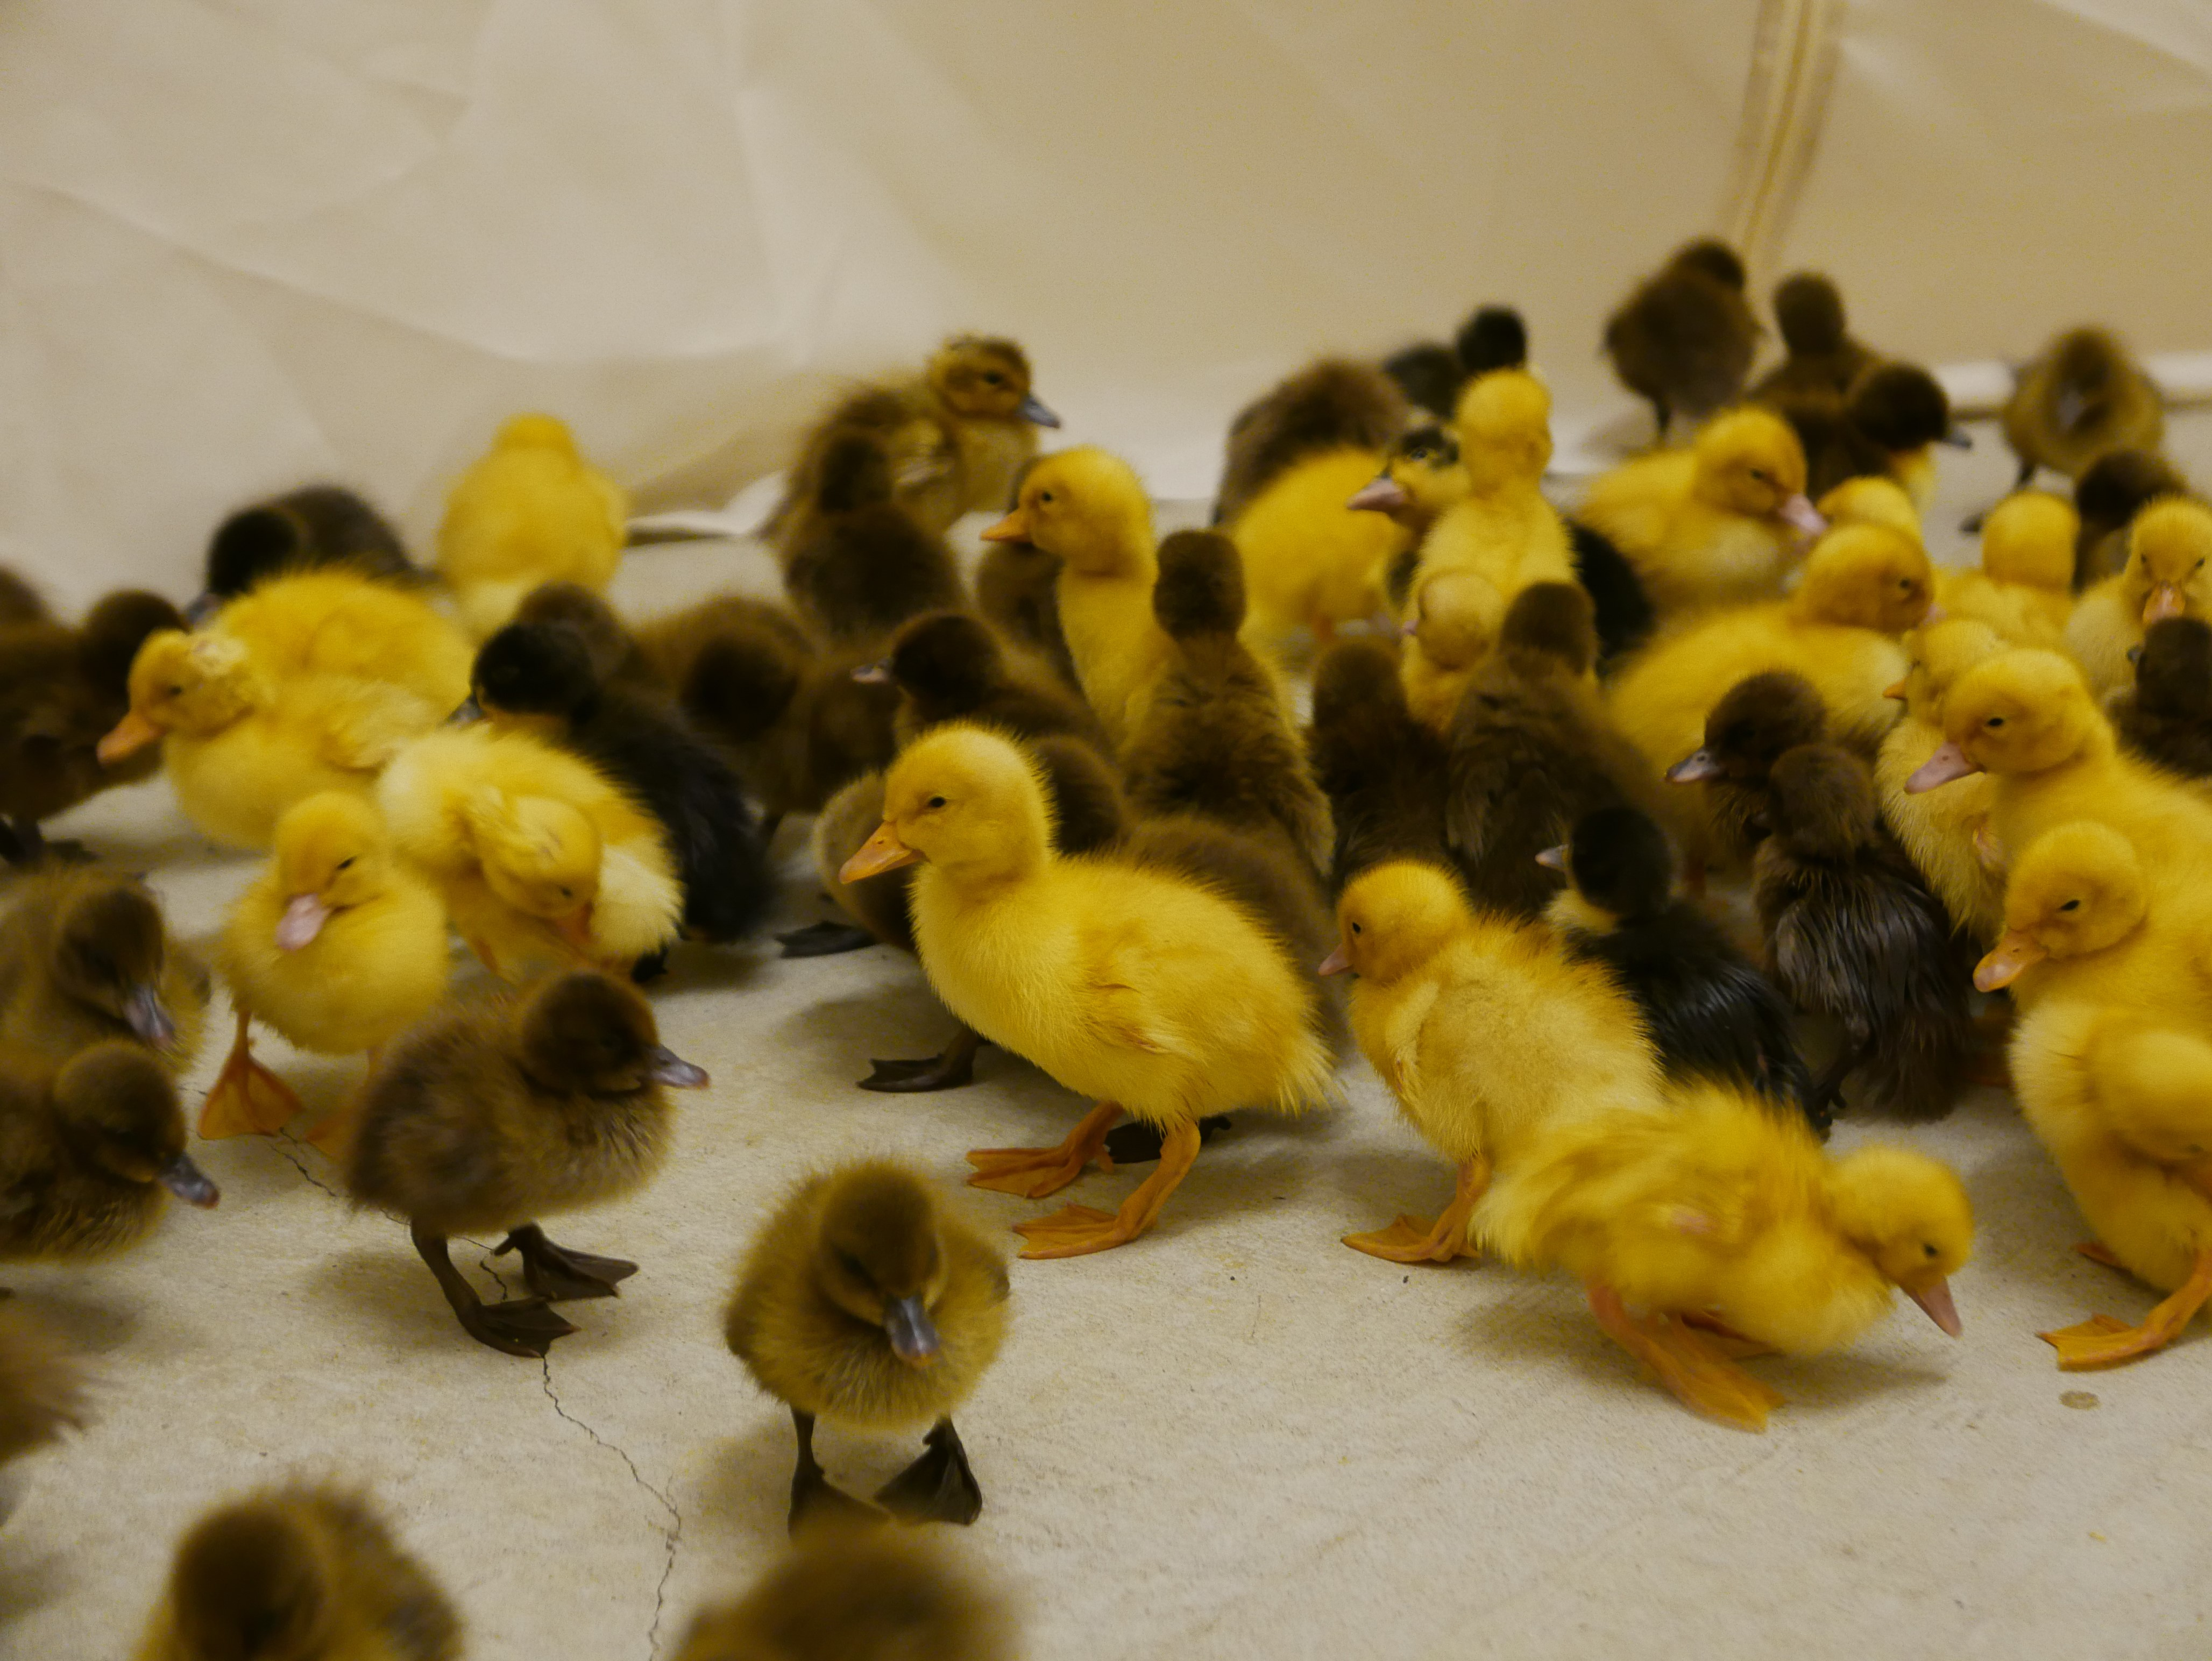 Ducklings 'maintain two separate memory banks of visual information'